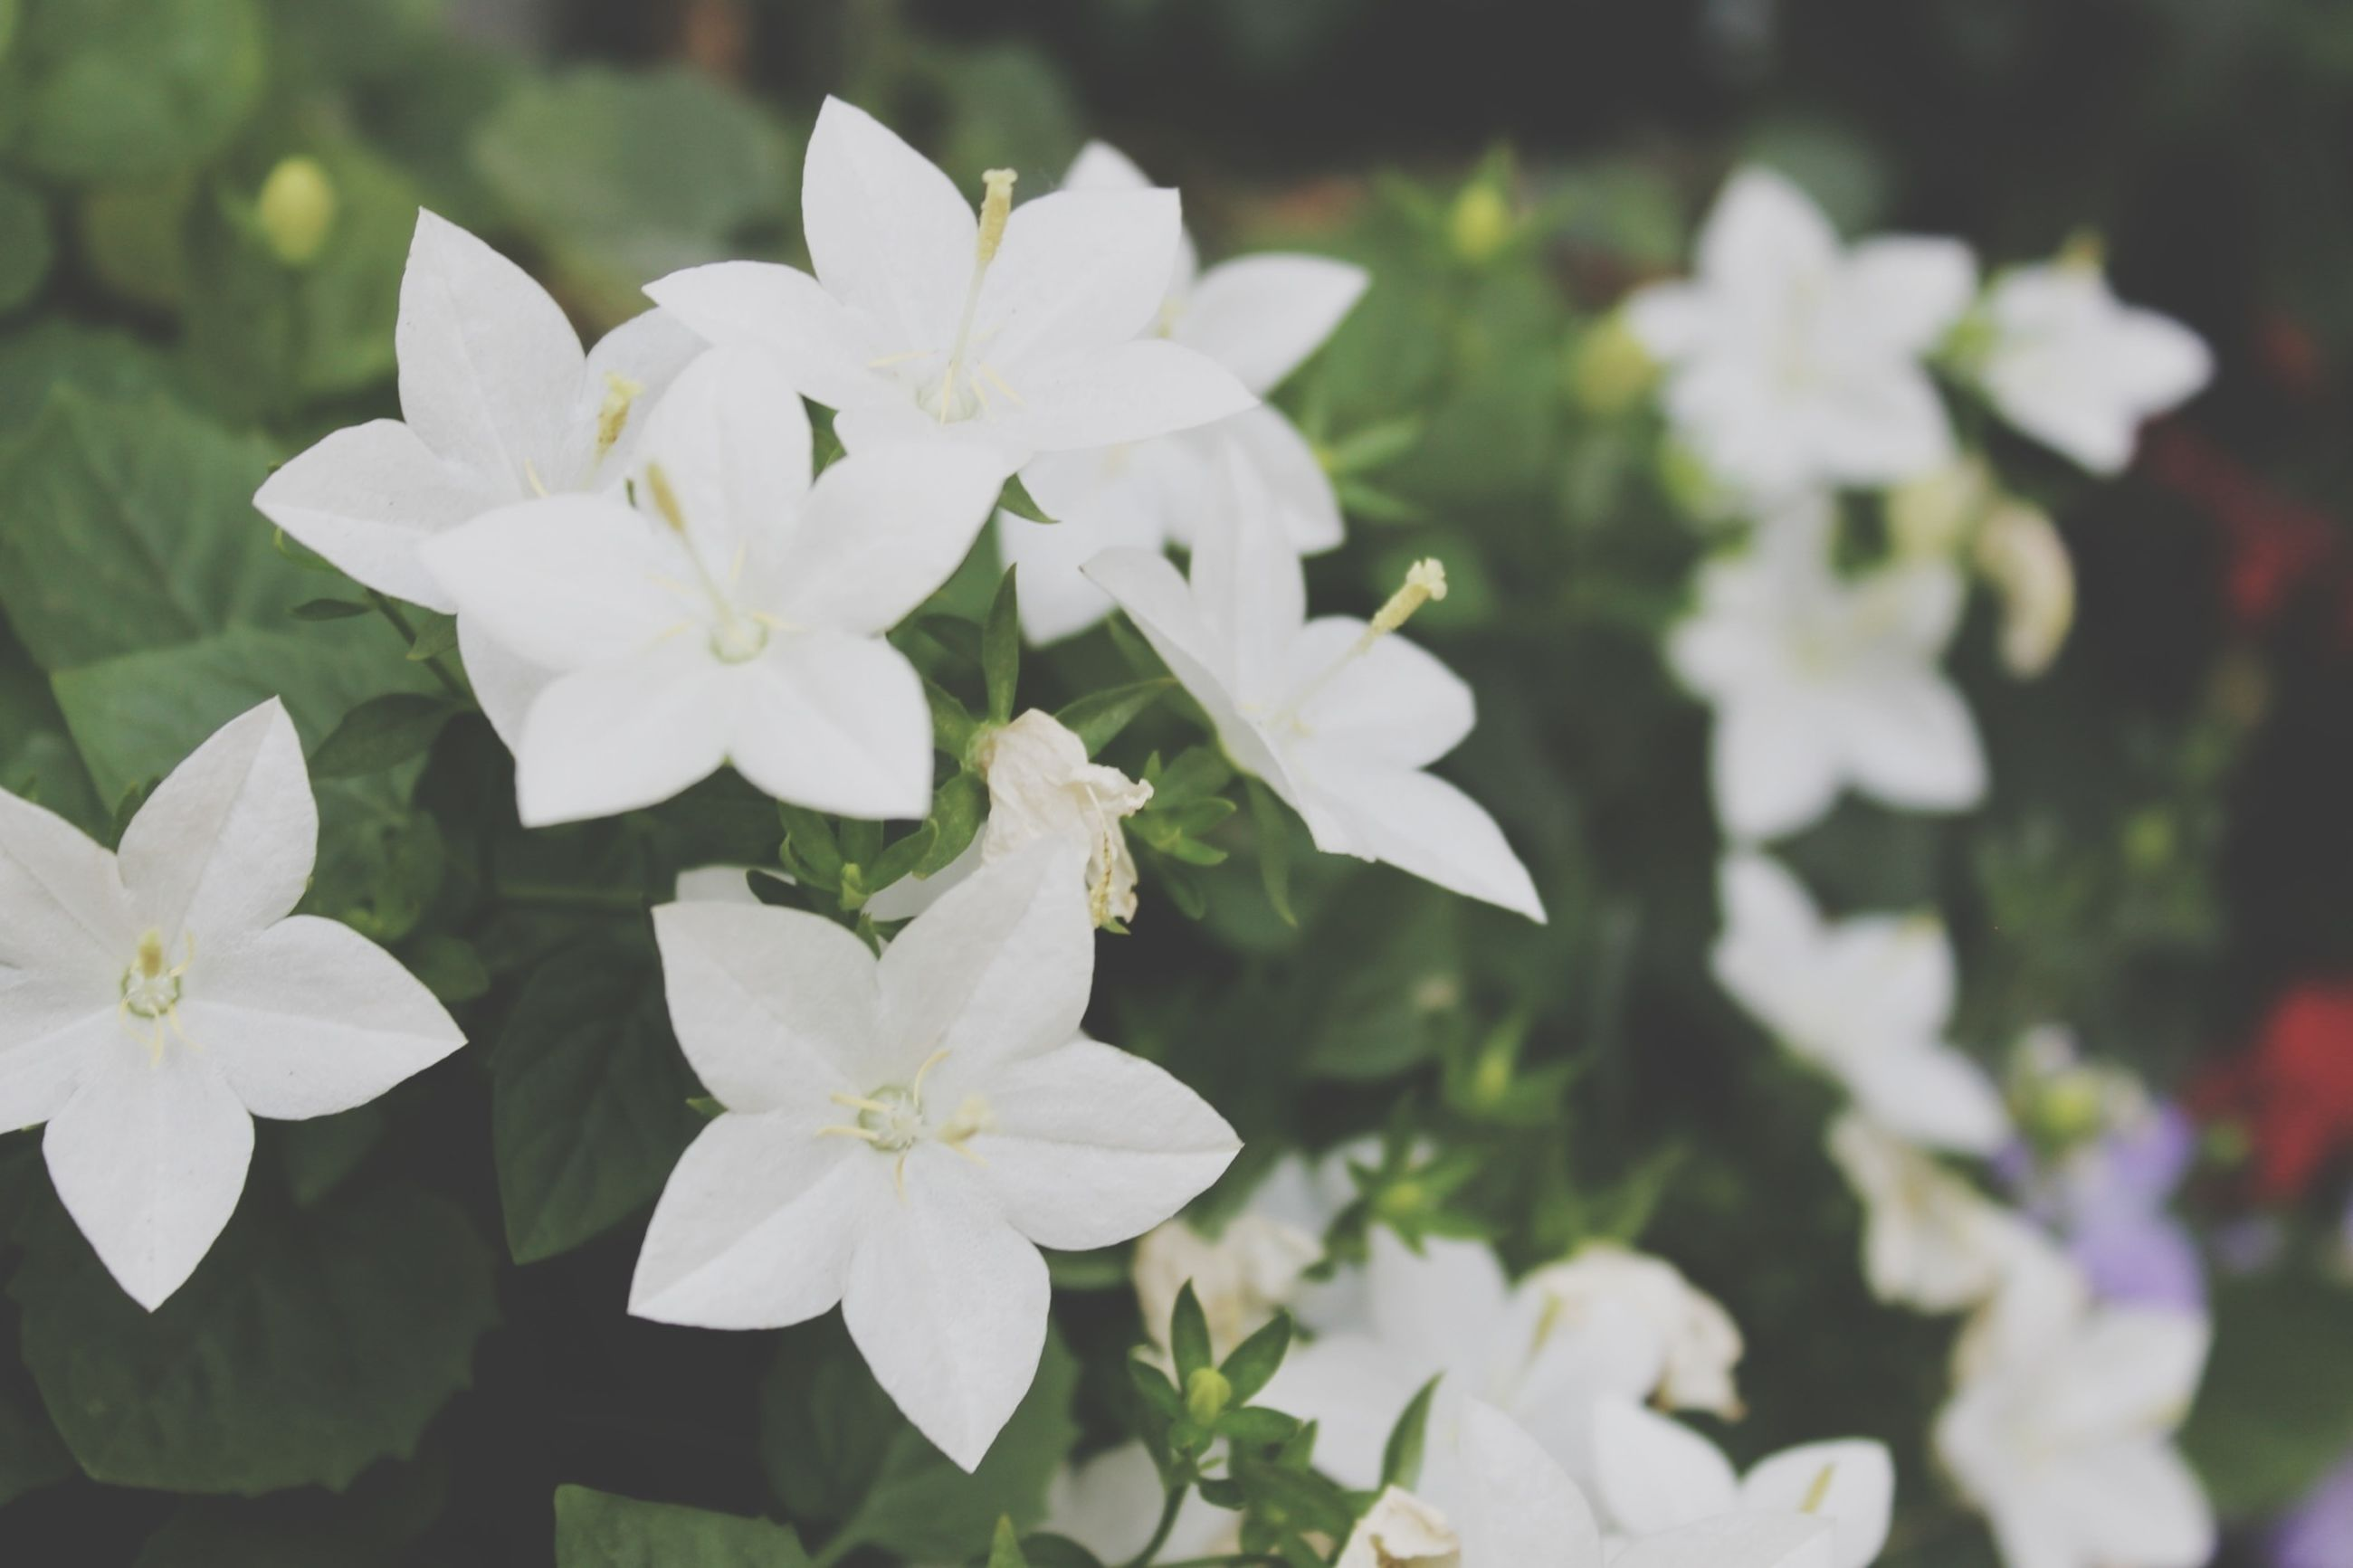 flower, petal, freshness, white color, fragility, growth, flower head, focus on foreground, beauty in nature, blooming, close-up, nature, plant, in bloom, white, park - man made space, blossom, day, outdoors, selective focus